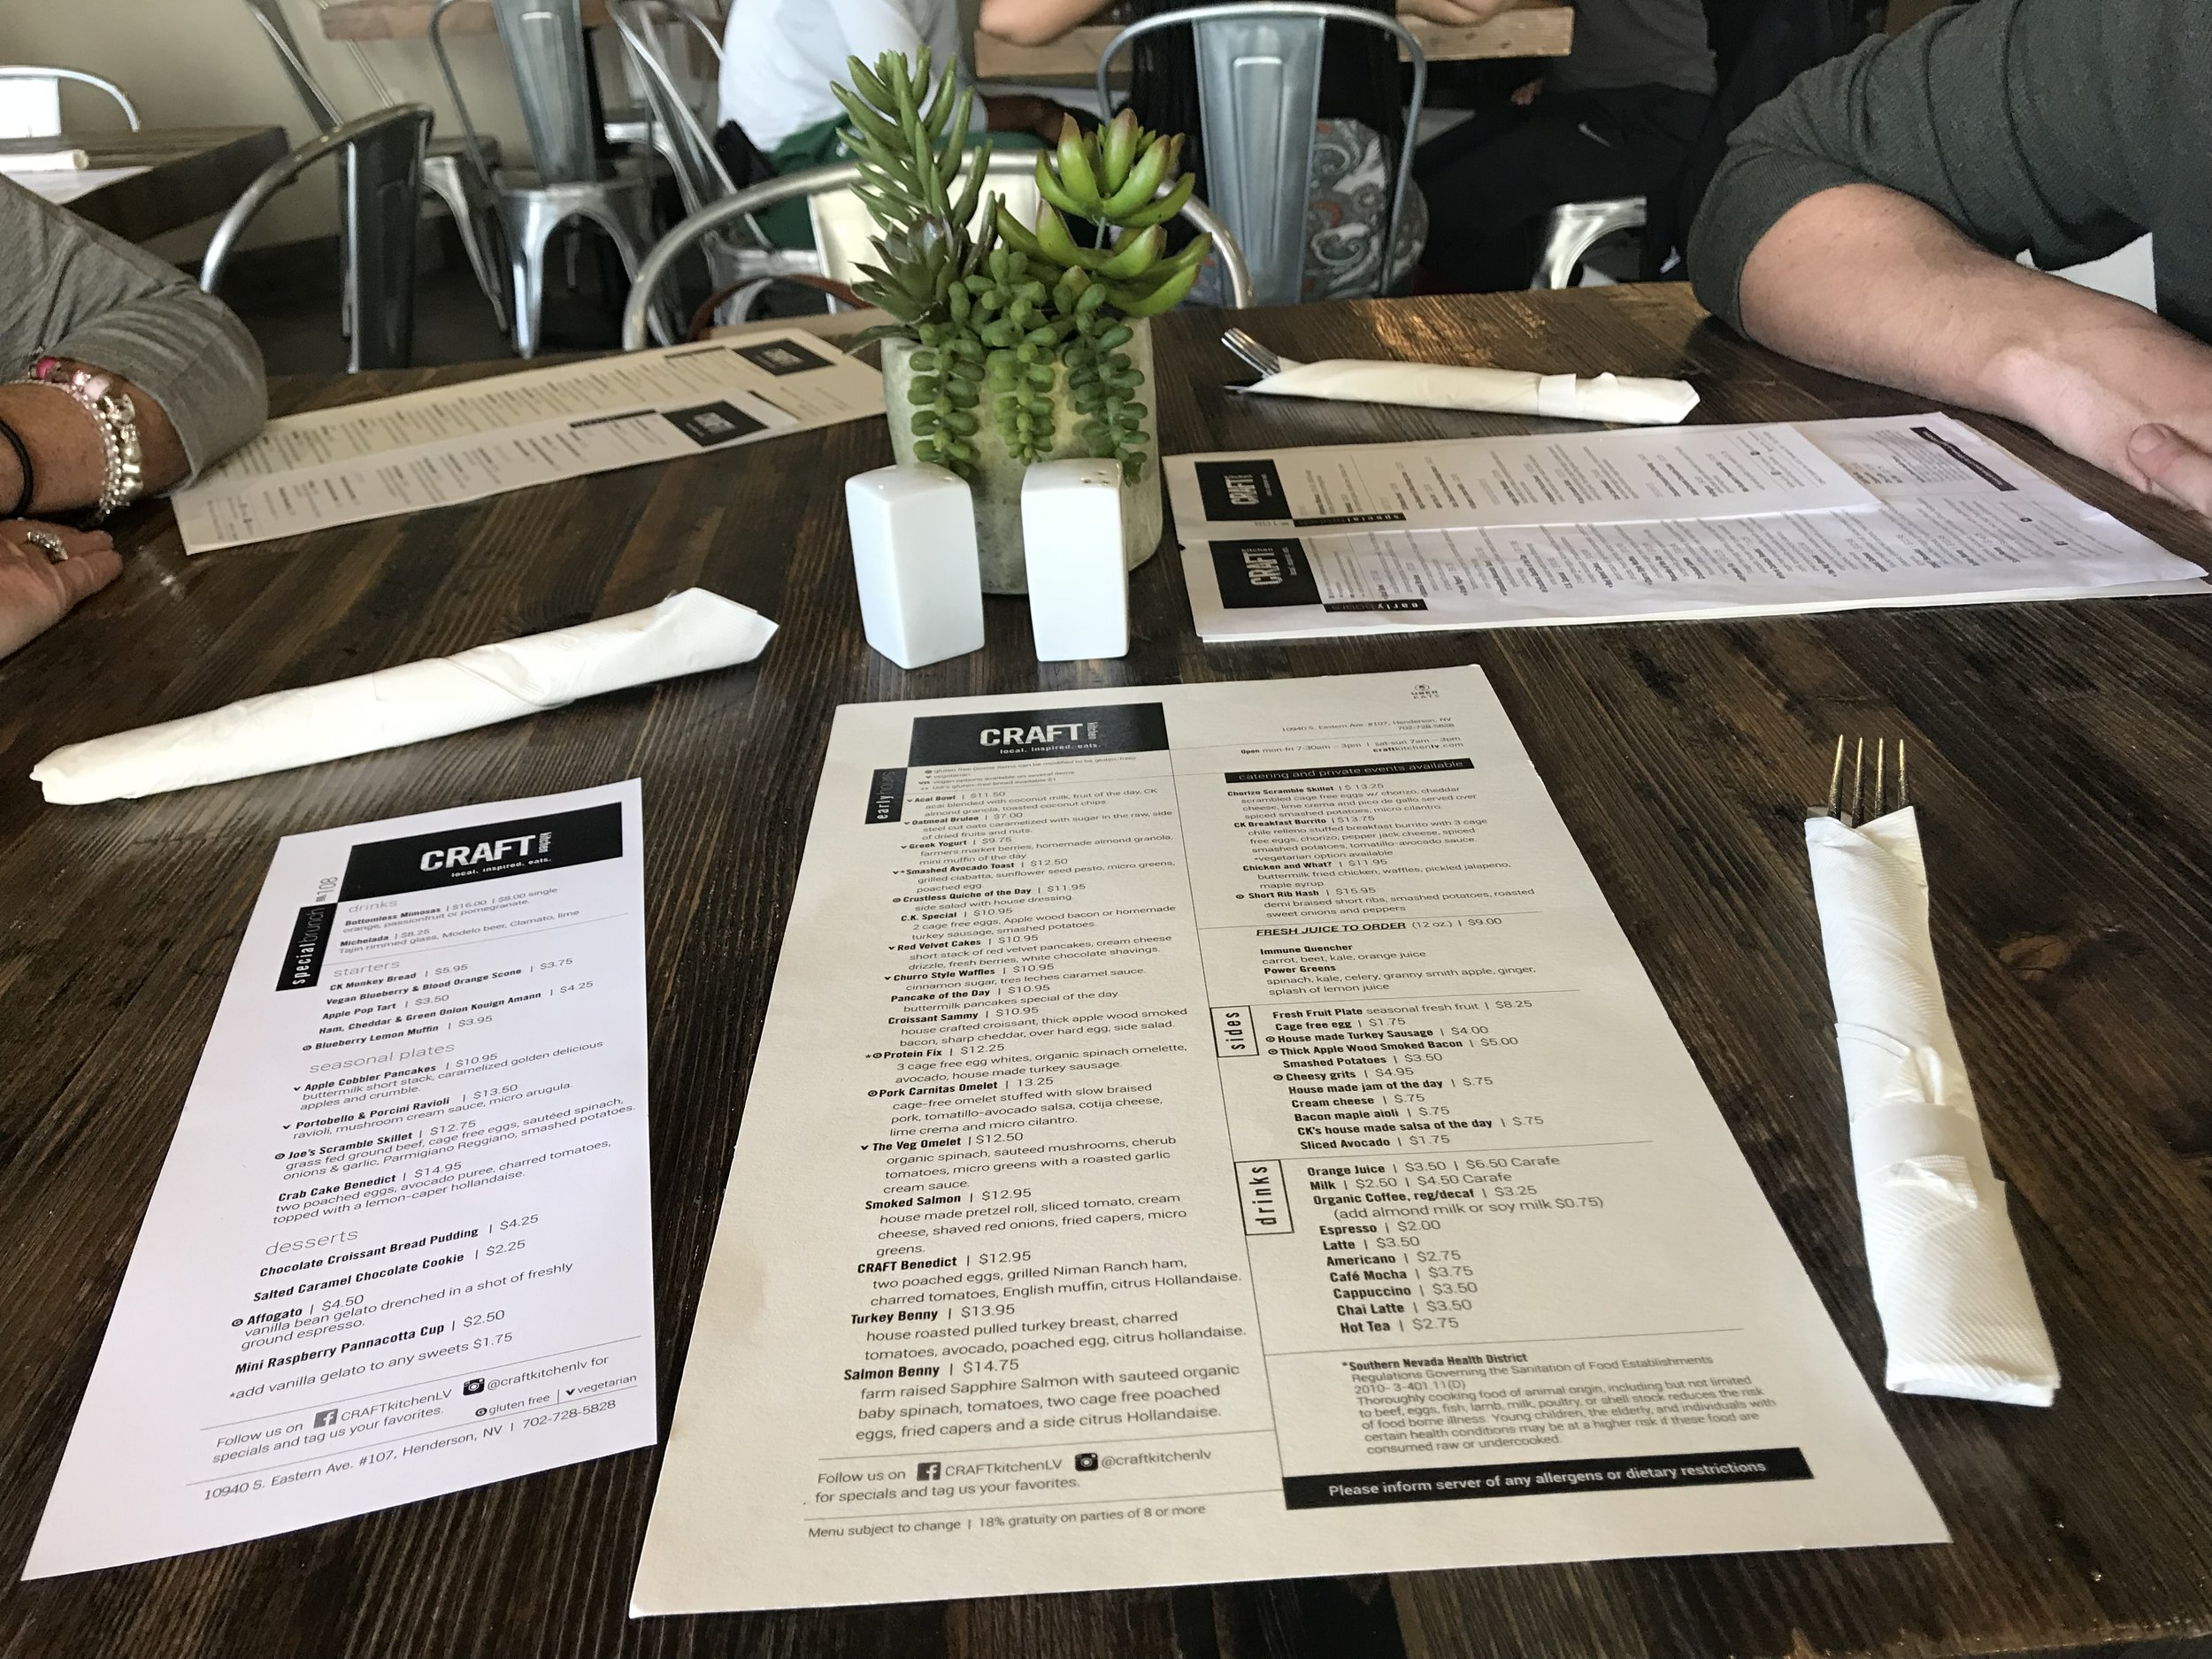 Curated brunch menu alongside their staple menu